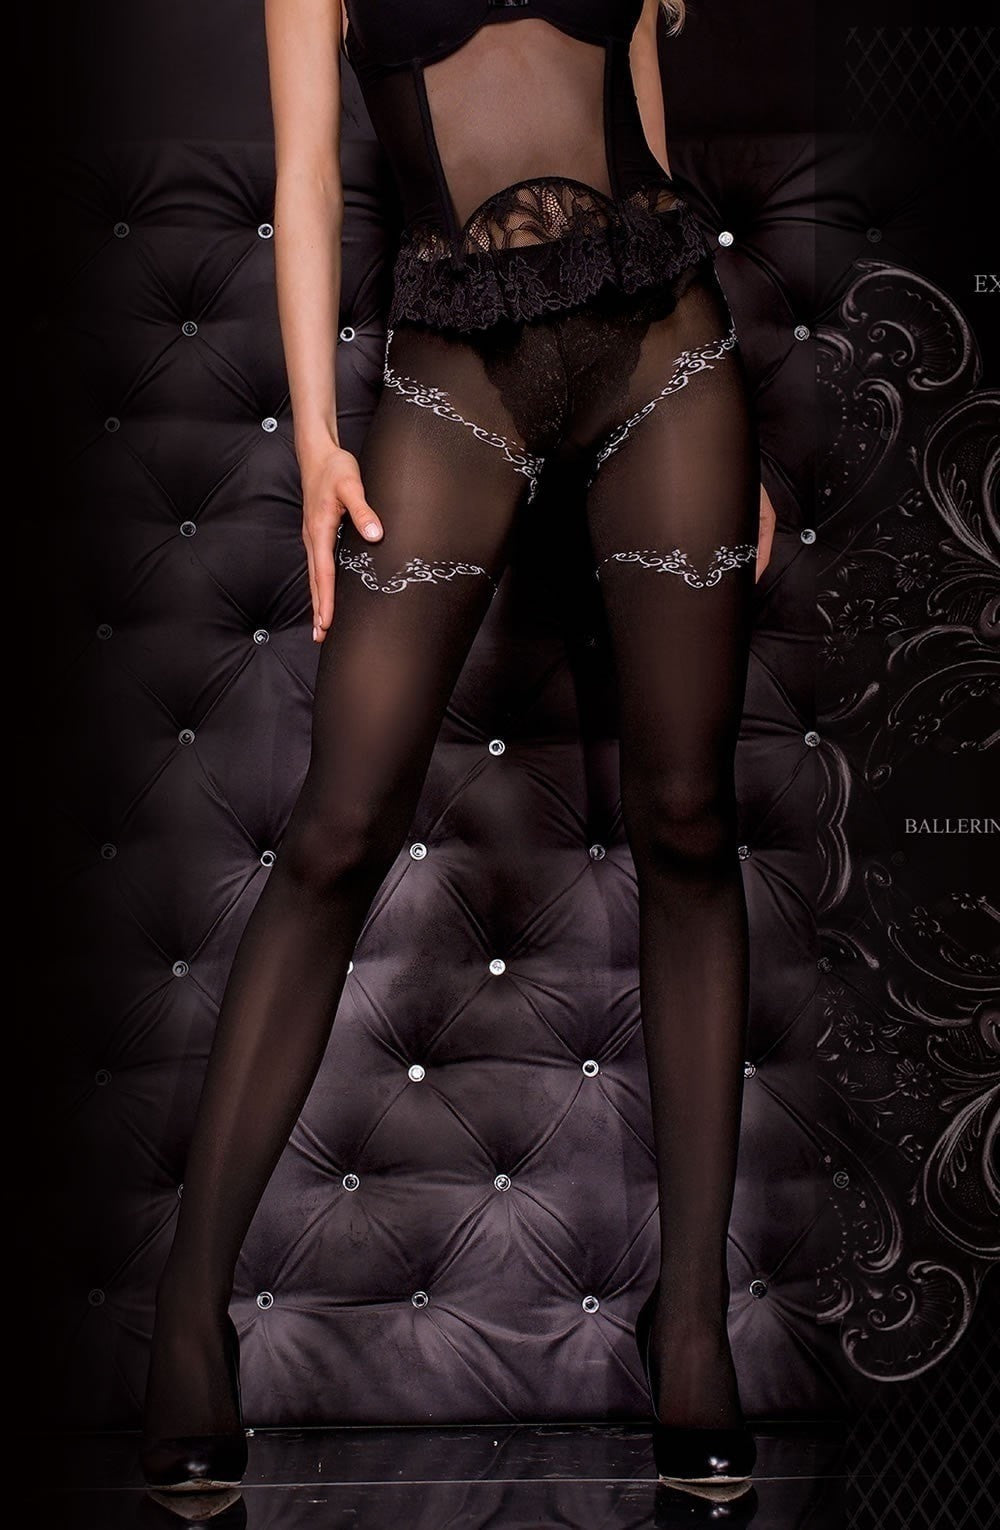 Ballerina Tights 303 (Black) - Tights - Ballerina - Charm and Lace Boutique